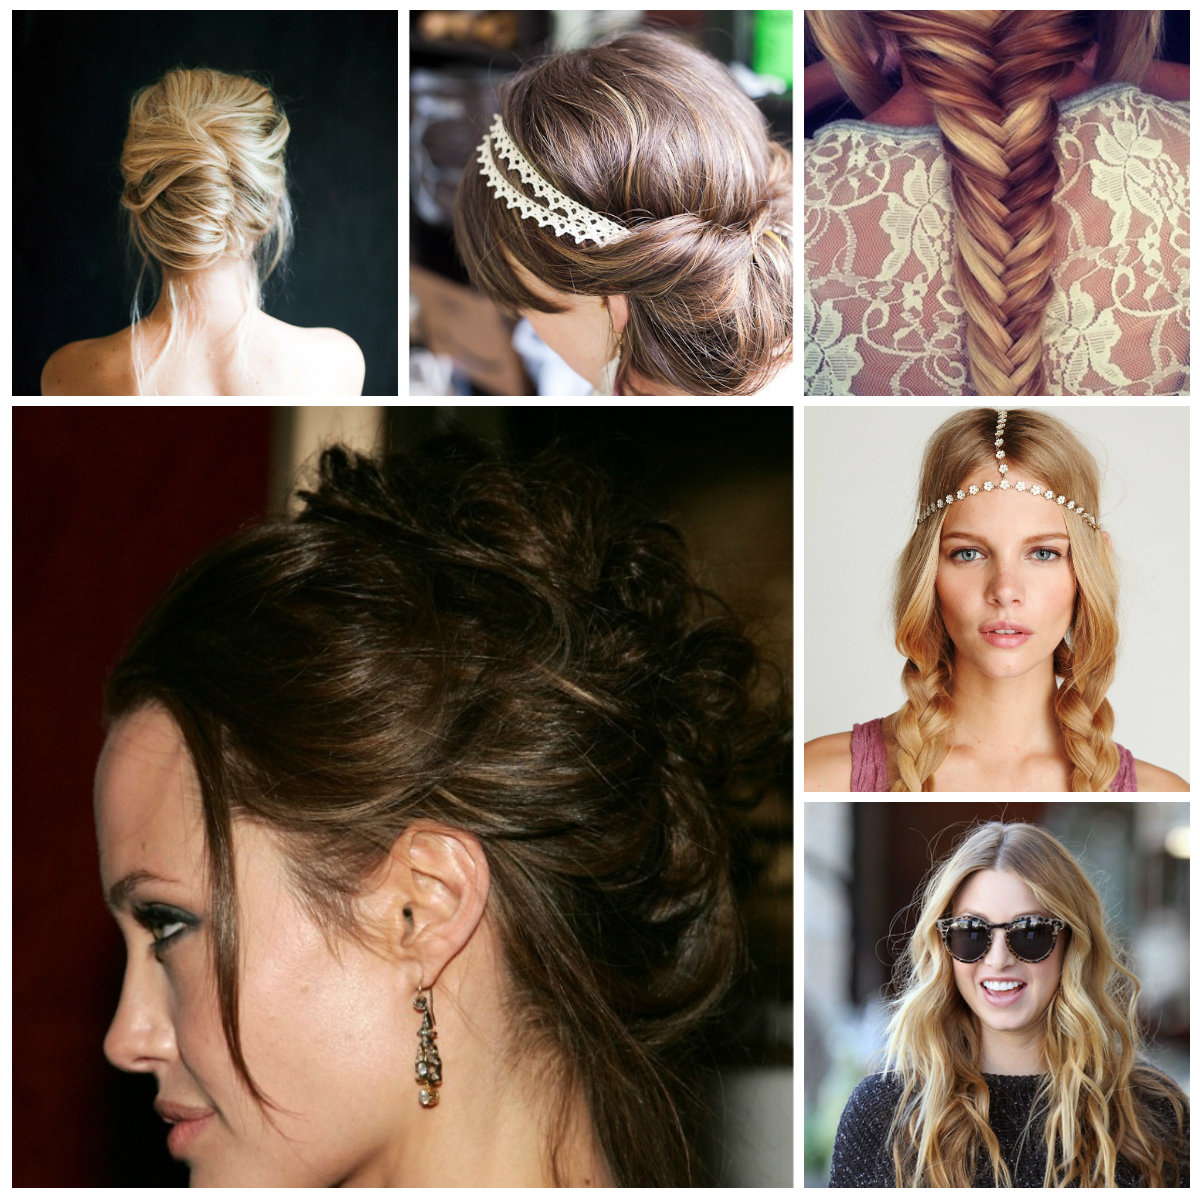 Amazing Bohemian Hair Ideas – Trendy Hairstyles 2019 For Long Within Bohemian Short Hairstyles (Gallery 12 of 25)